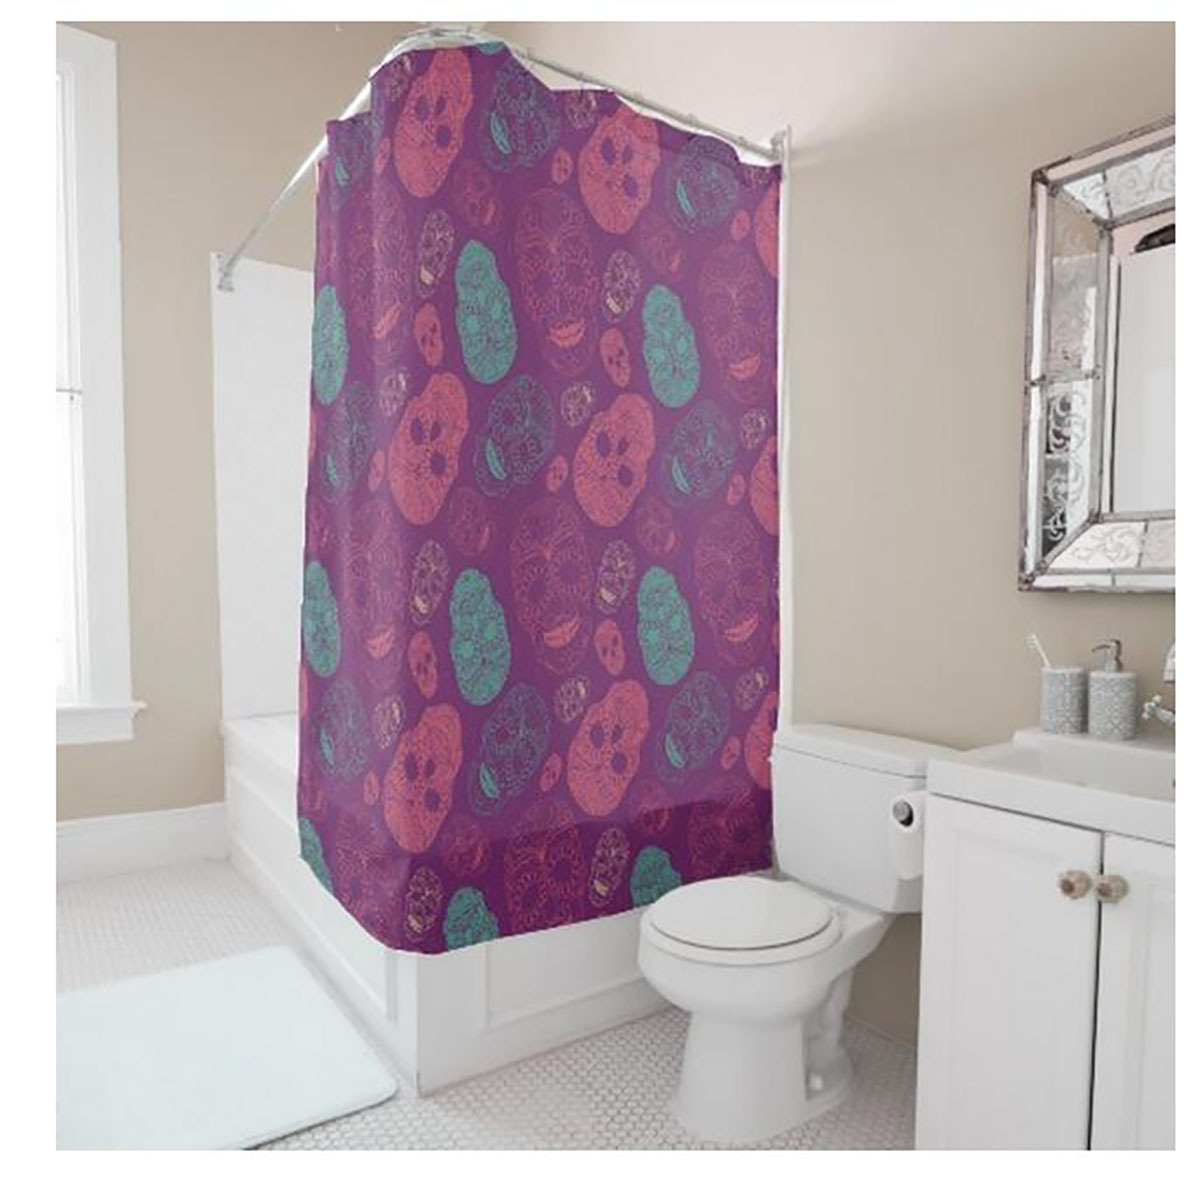 With creative shower curtains white and black creative shower curtain - Creative Personalized Skull Printing Purple Shower Curtain Polyester Waterproof Bathroom Shower Curtain China